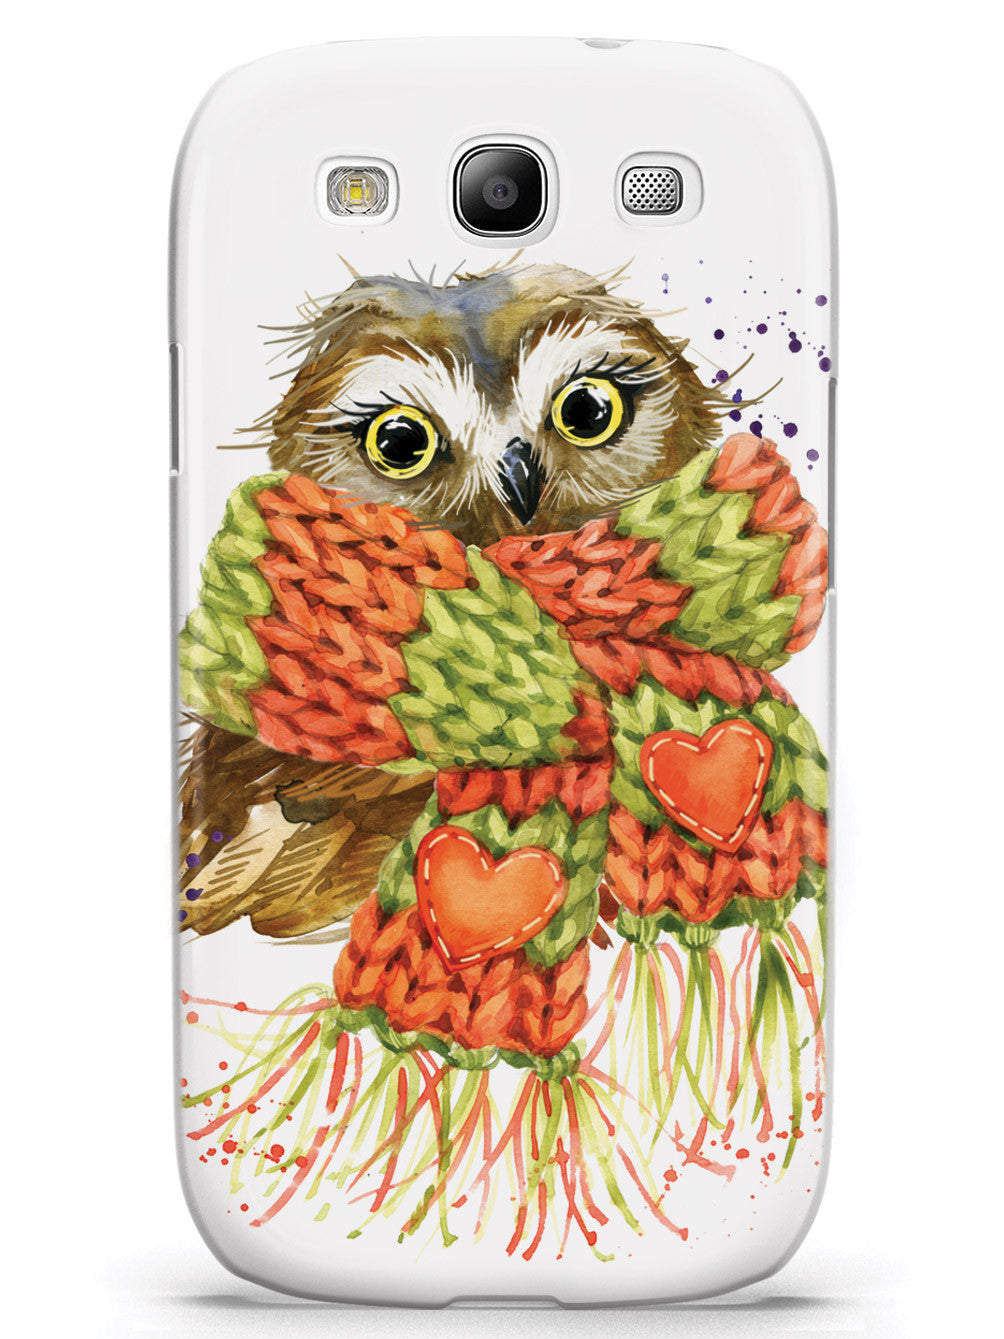 Autumn Owl with Scarf Case